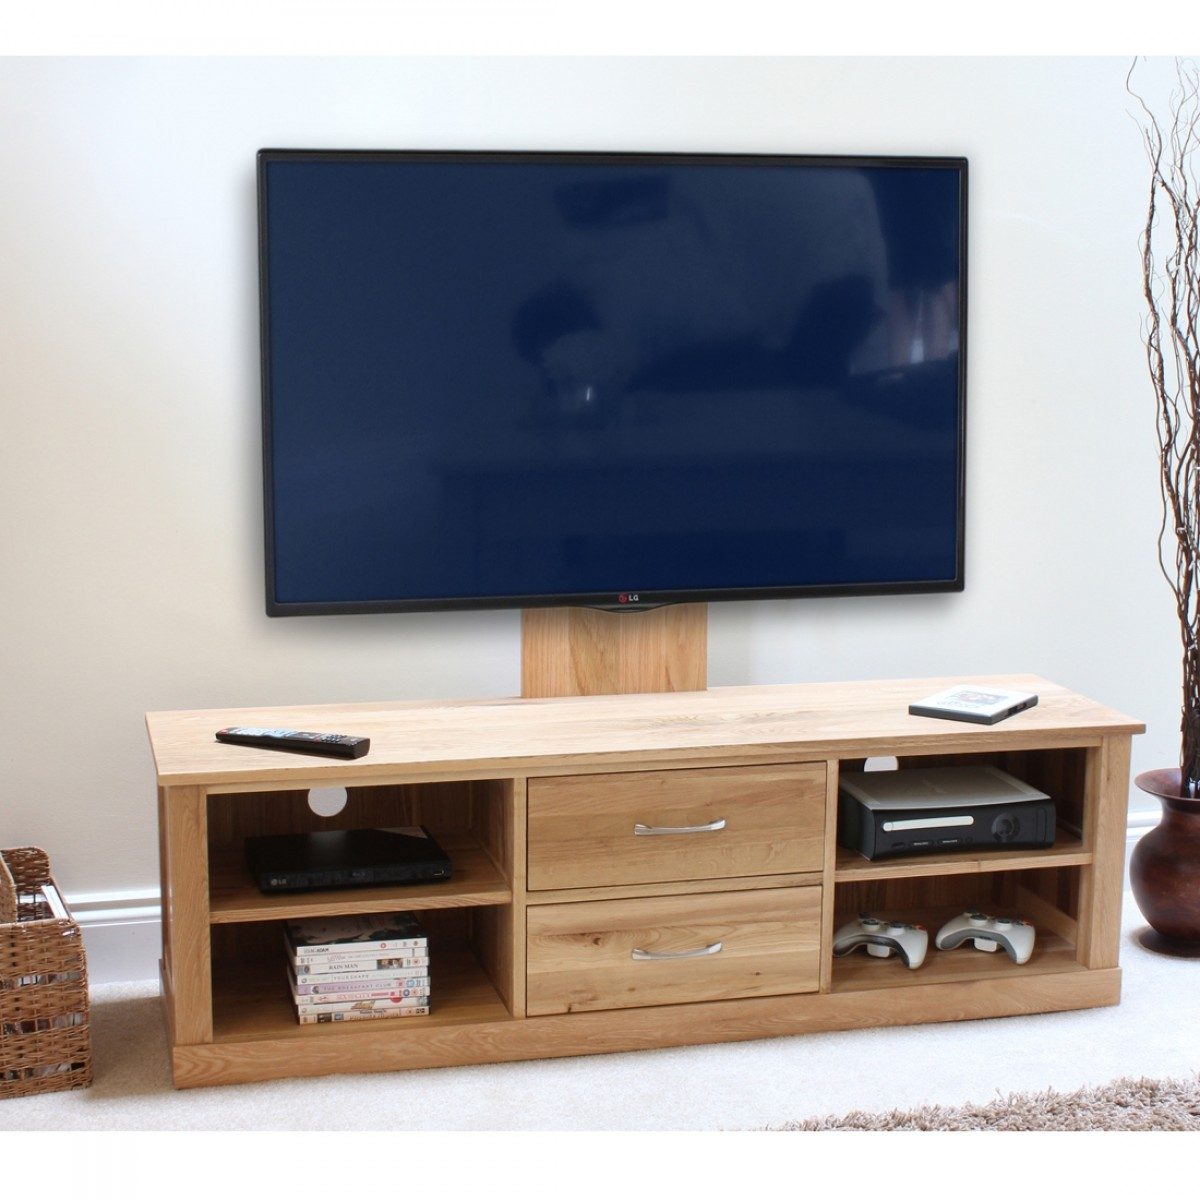 Mobel Tv Baumhaus Mobel Solid Oak Mounted Widescreen Tv Cabinet Cor09e